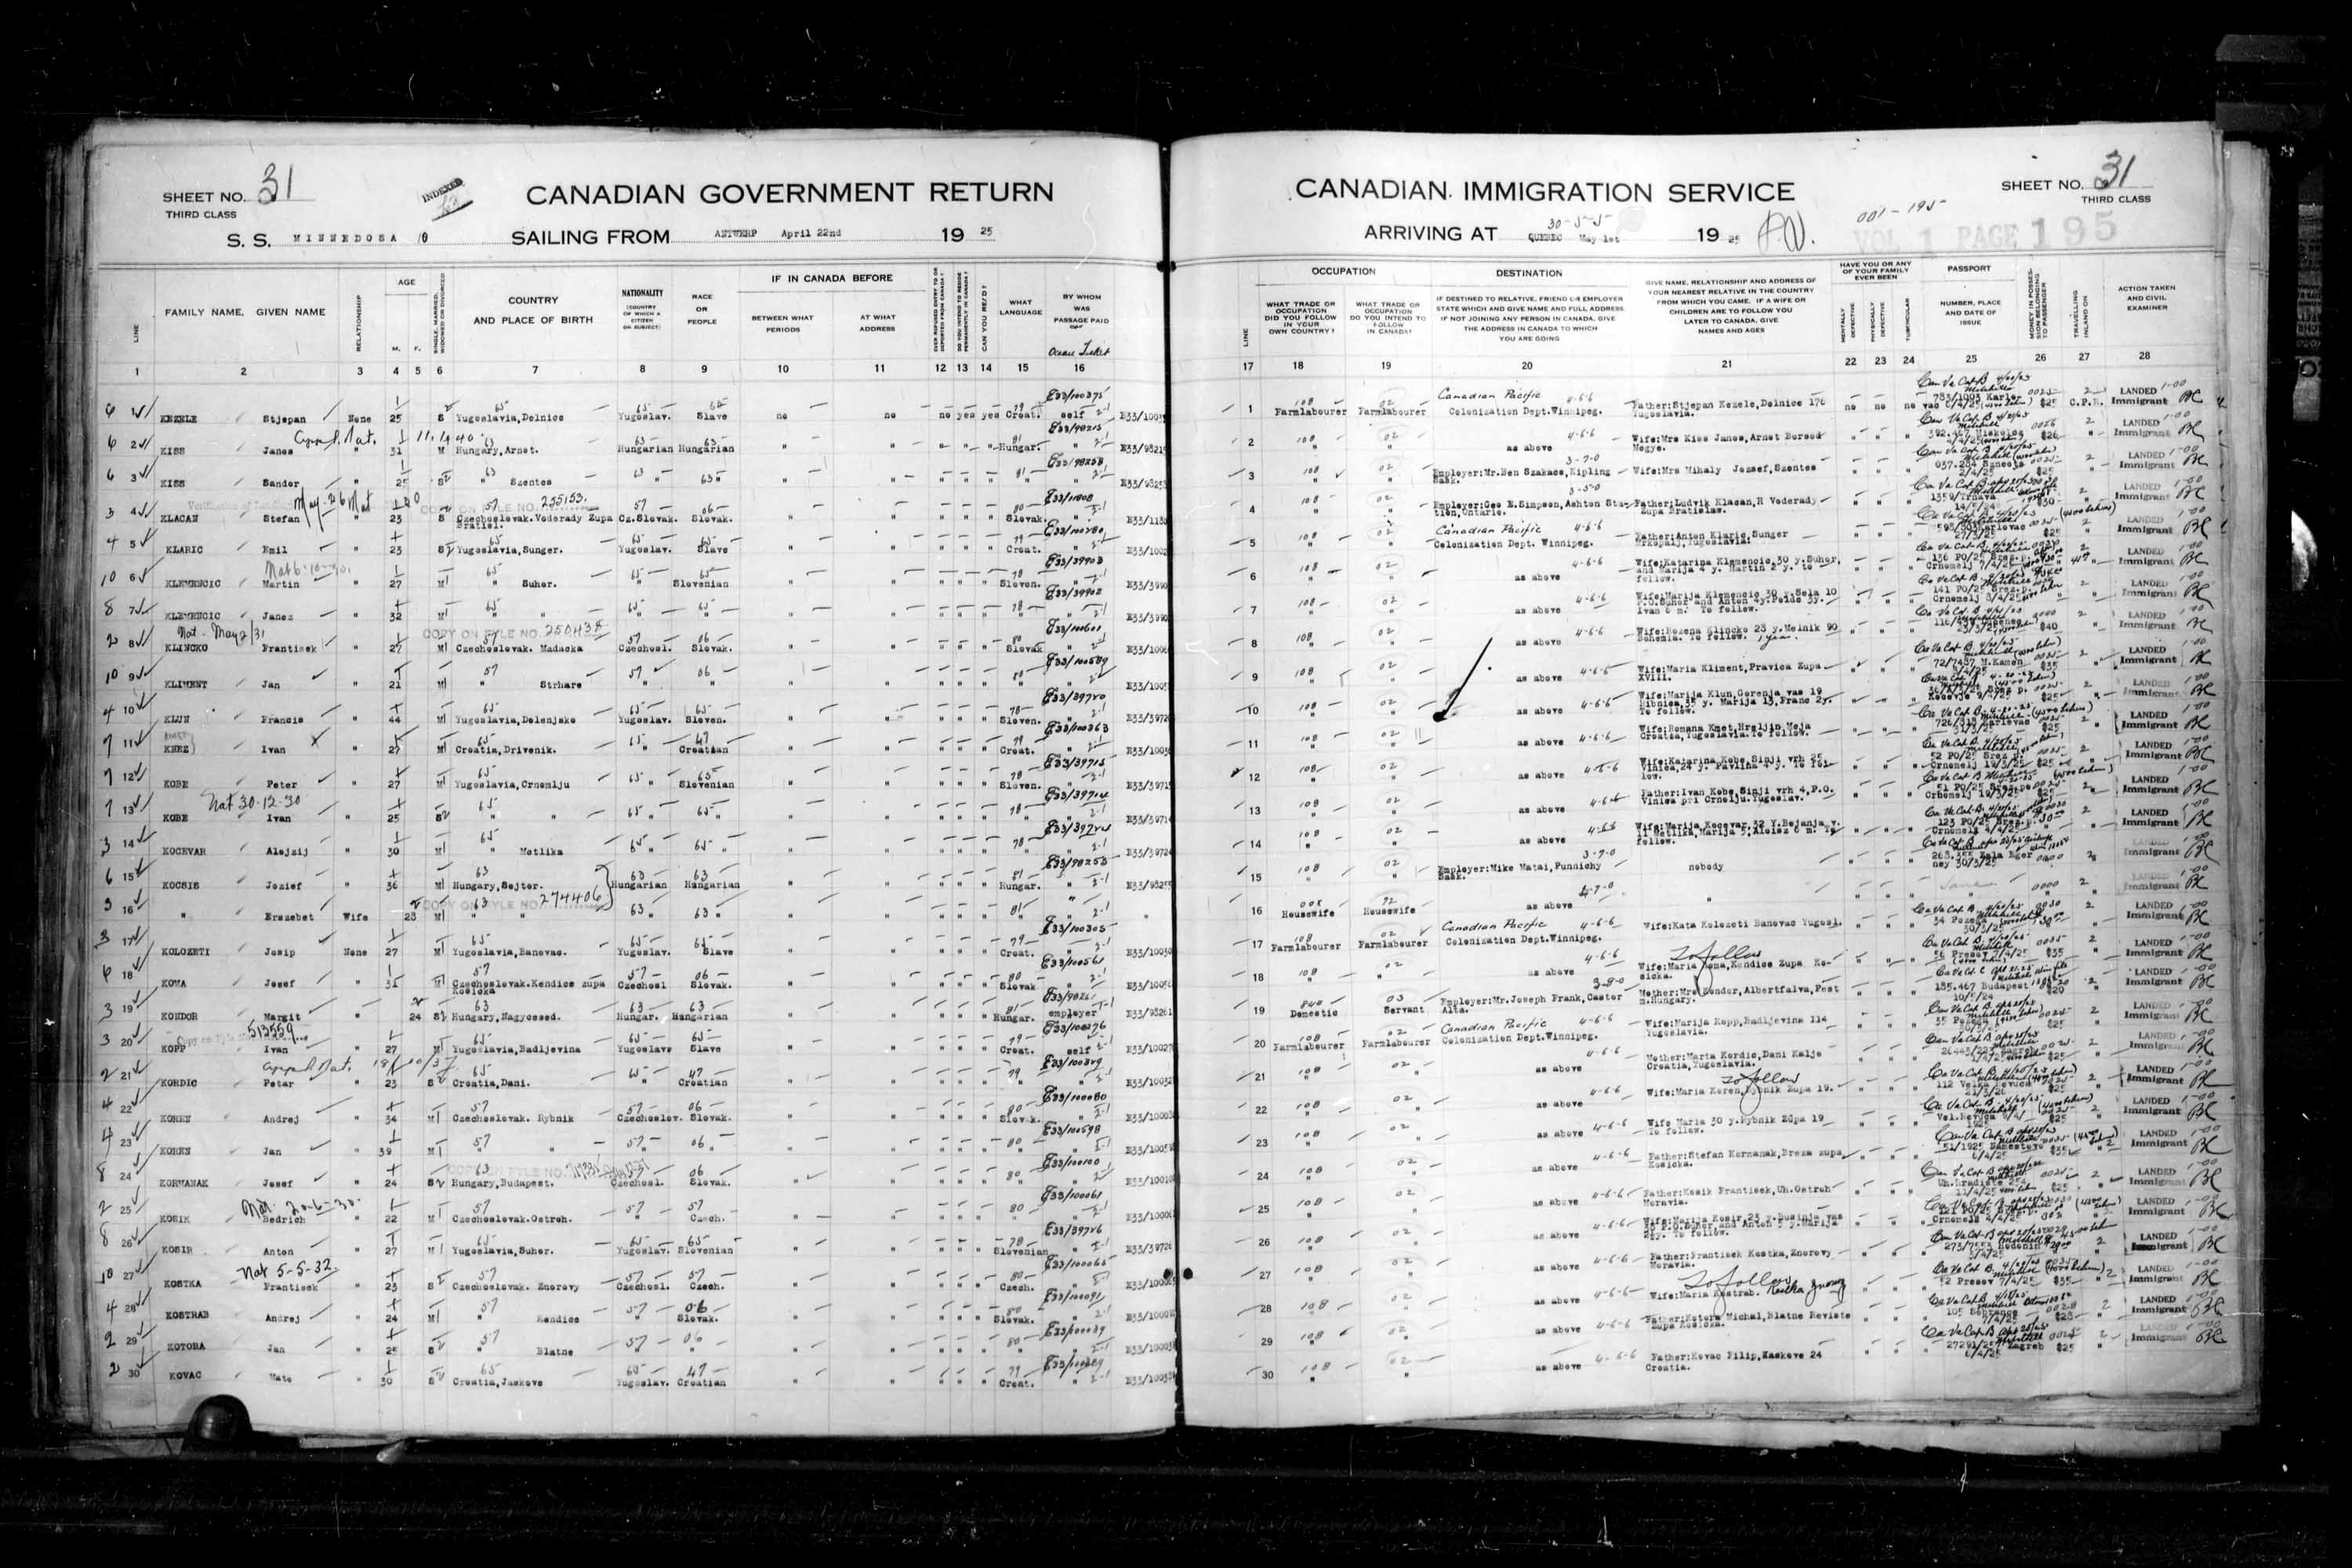 Title: Passenger Lists: Quebec City (1925-1935) - Mikan Number: 134839 - Microform: t-14714